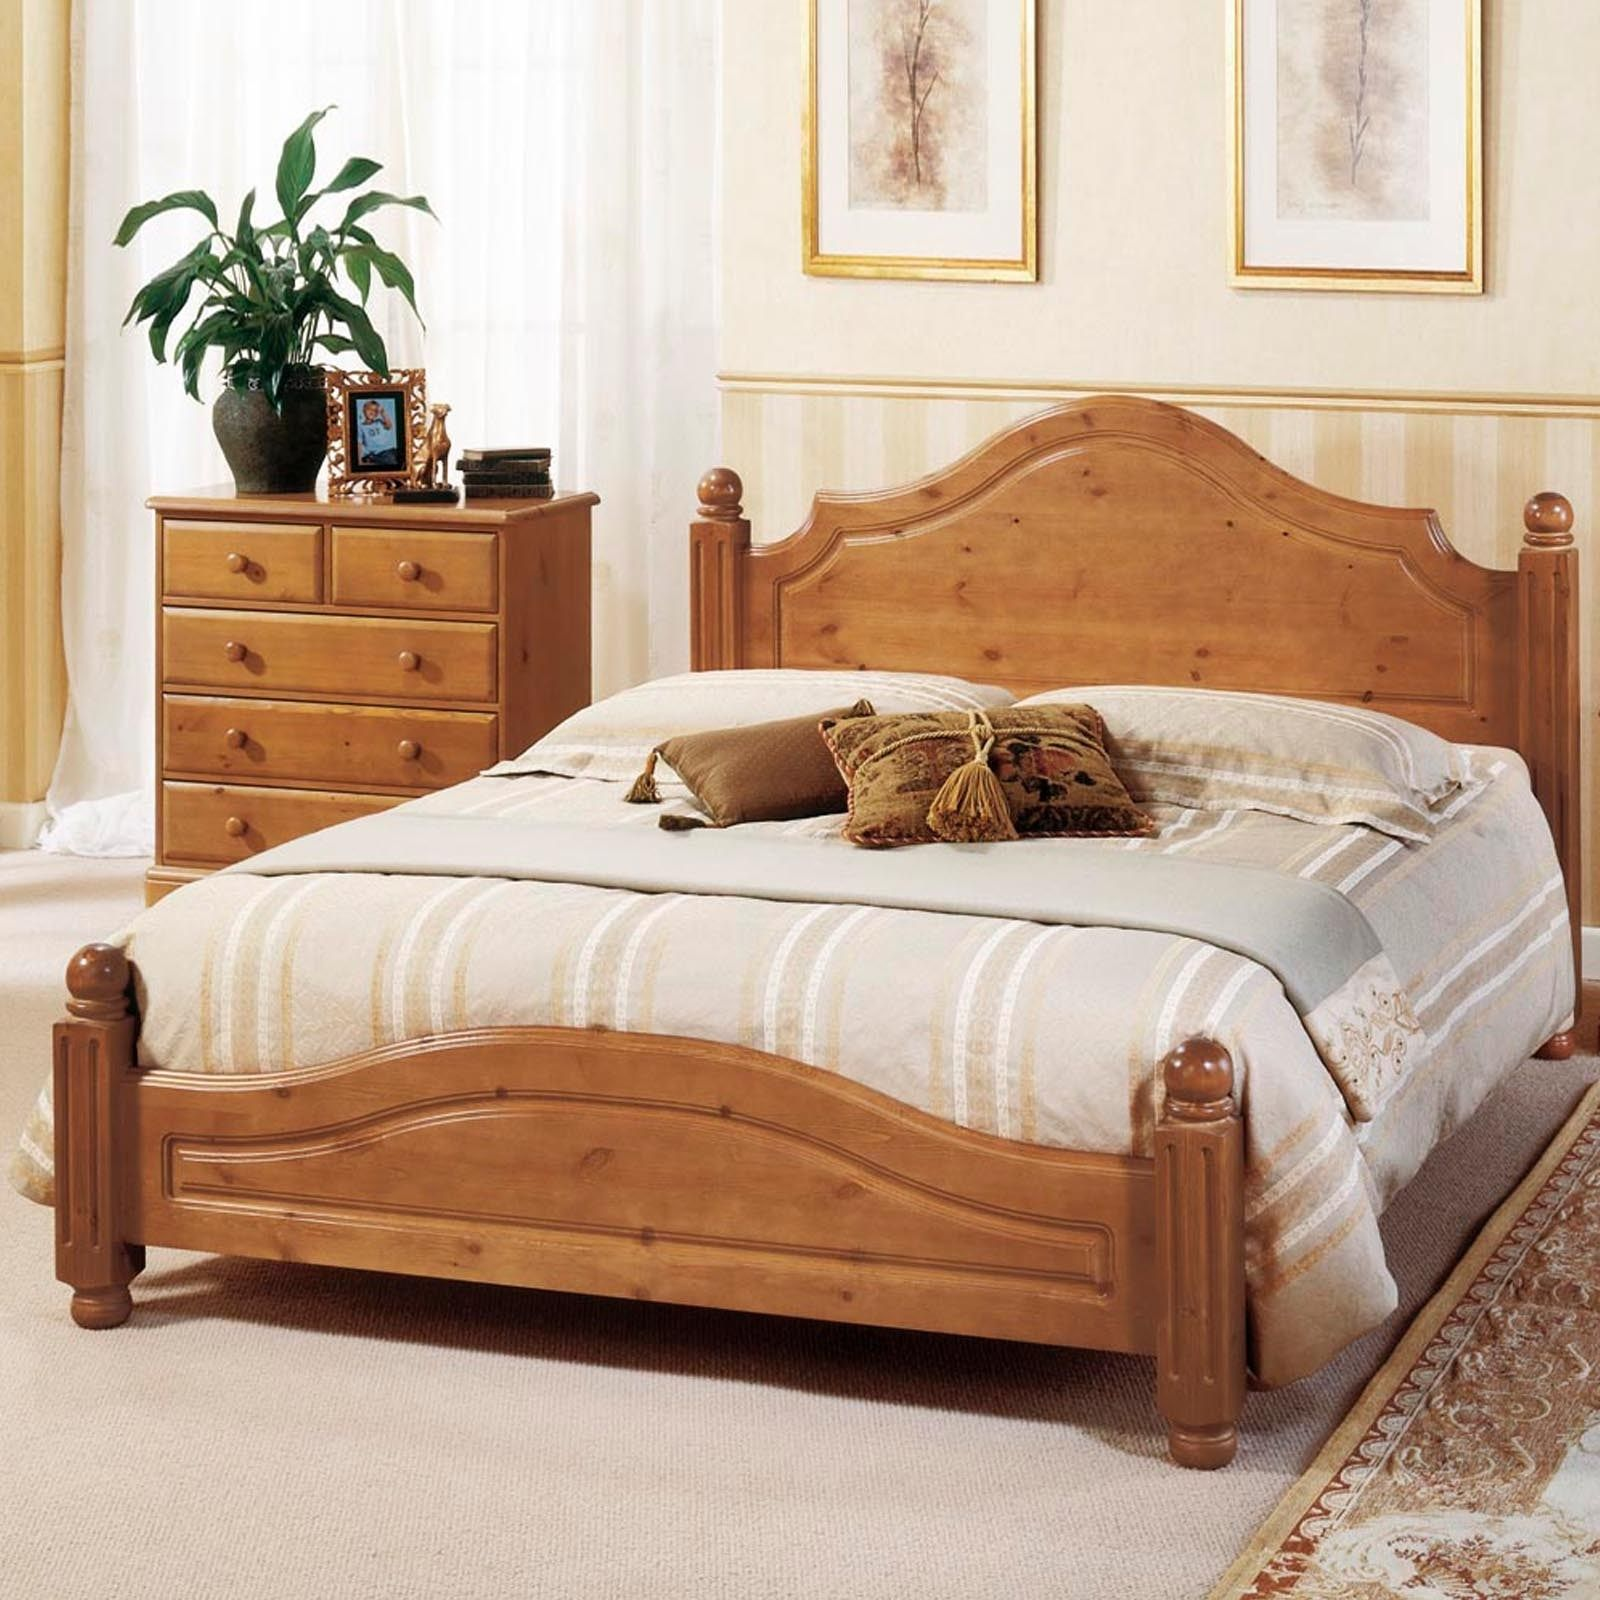 fabulous used bedroom furniture. The Canterbury Collection Delivers Outstanding Quality, Choice And Value In A Range Of Sizes. Fabulous Used Bedroom Furniture